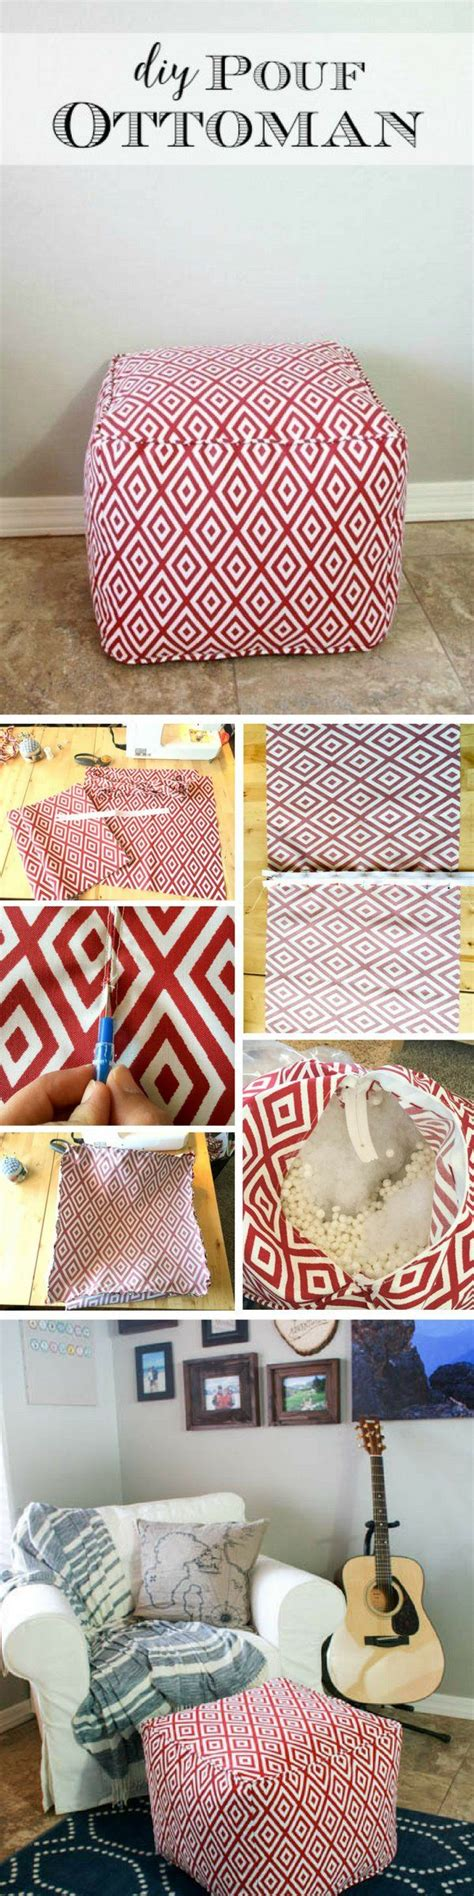 how to make pouf ottoman best 25 diy ottoman ideas on pinterest diy storage pouf